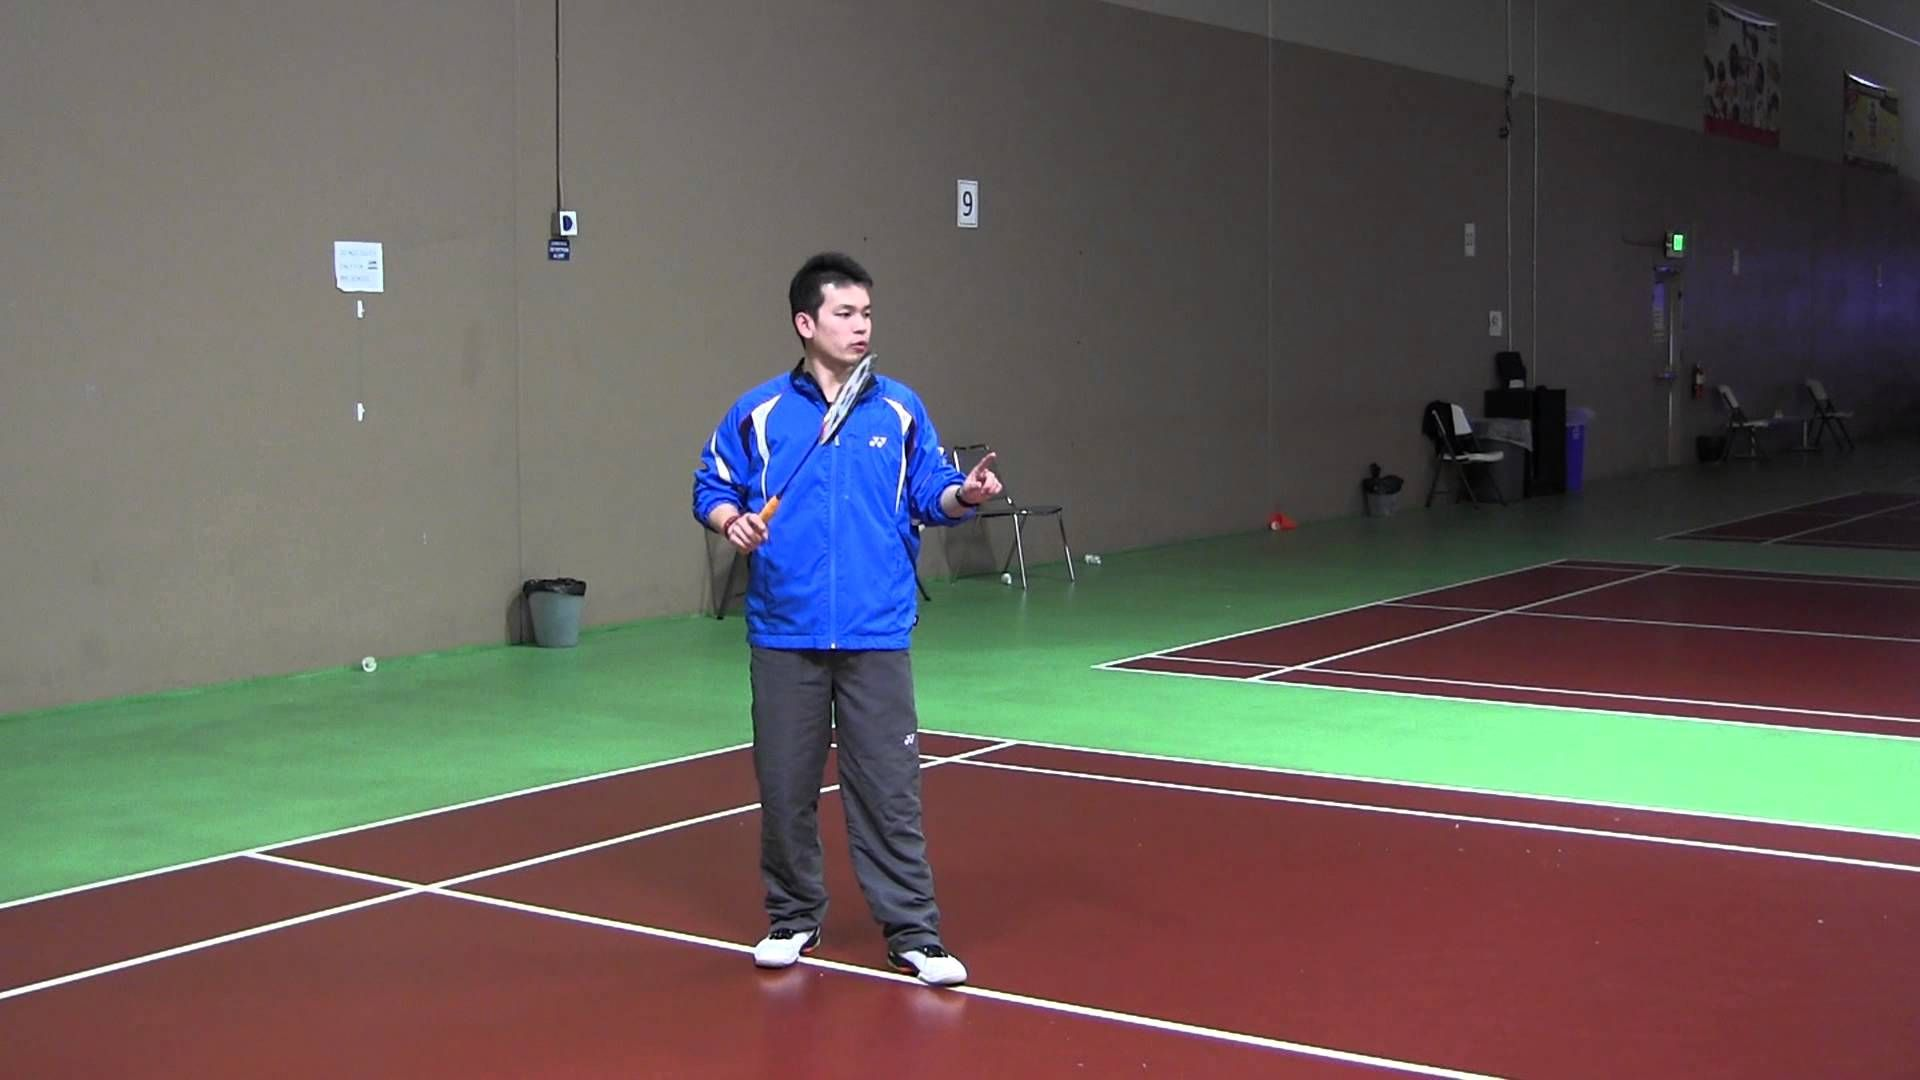 Badminton Beginners Lesson 1 Basic Clear Motion Exercise Badminton Badminton Tips Beginner Lesson